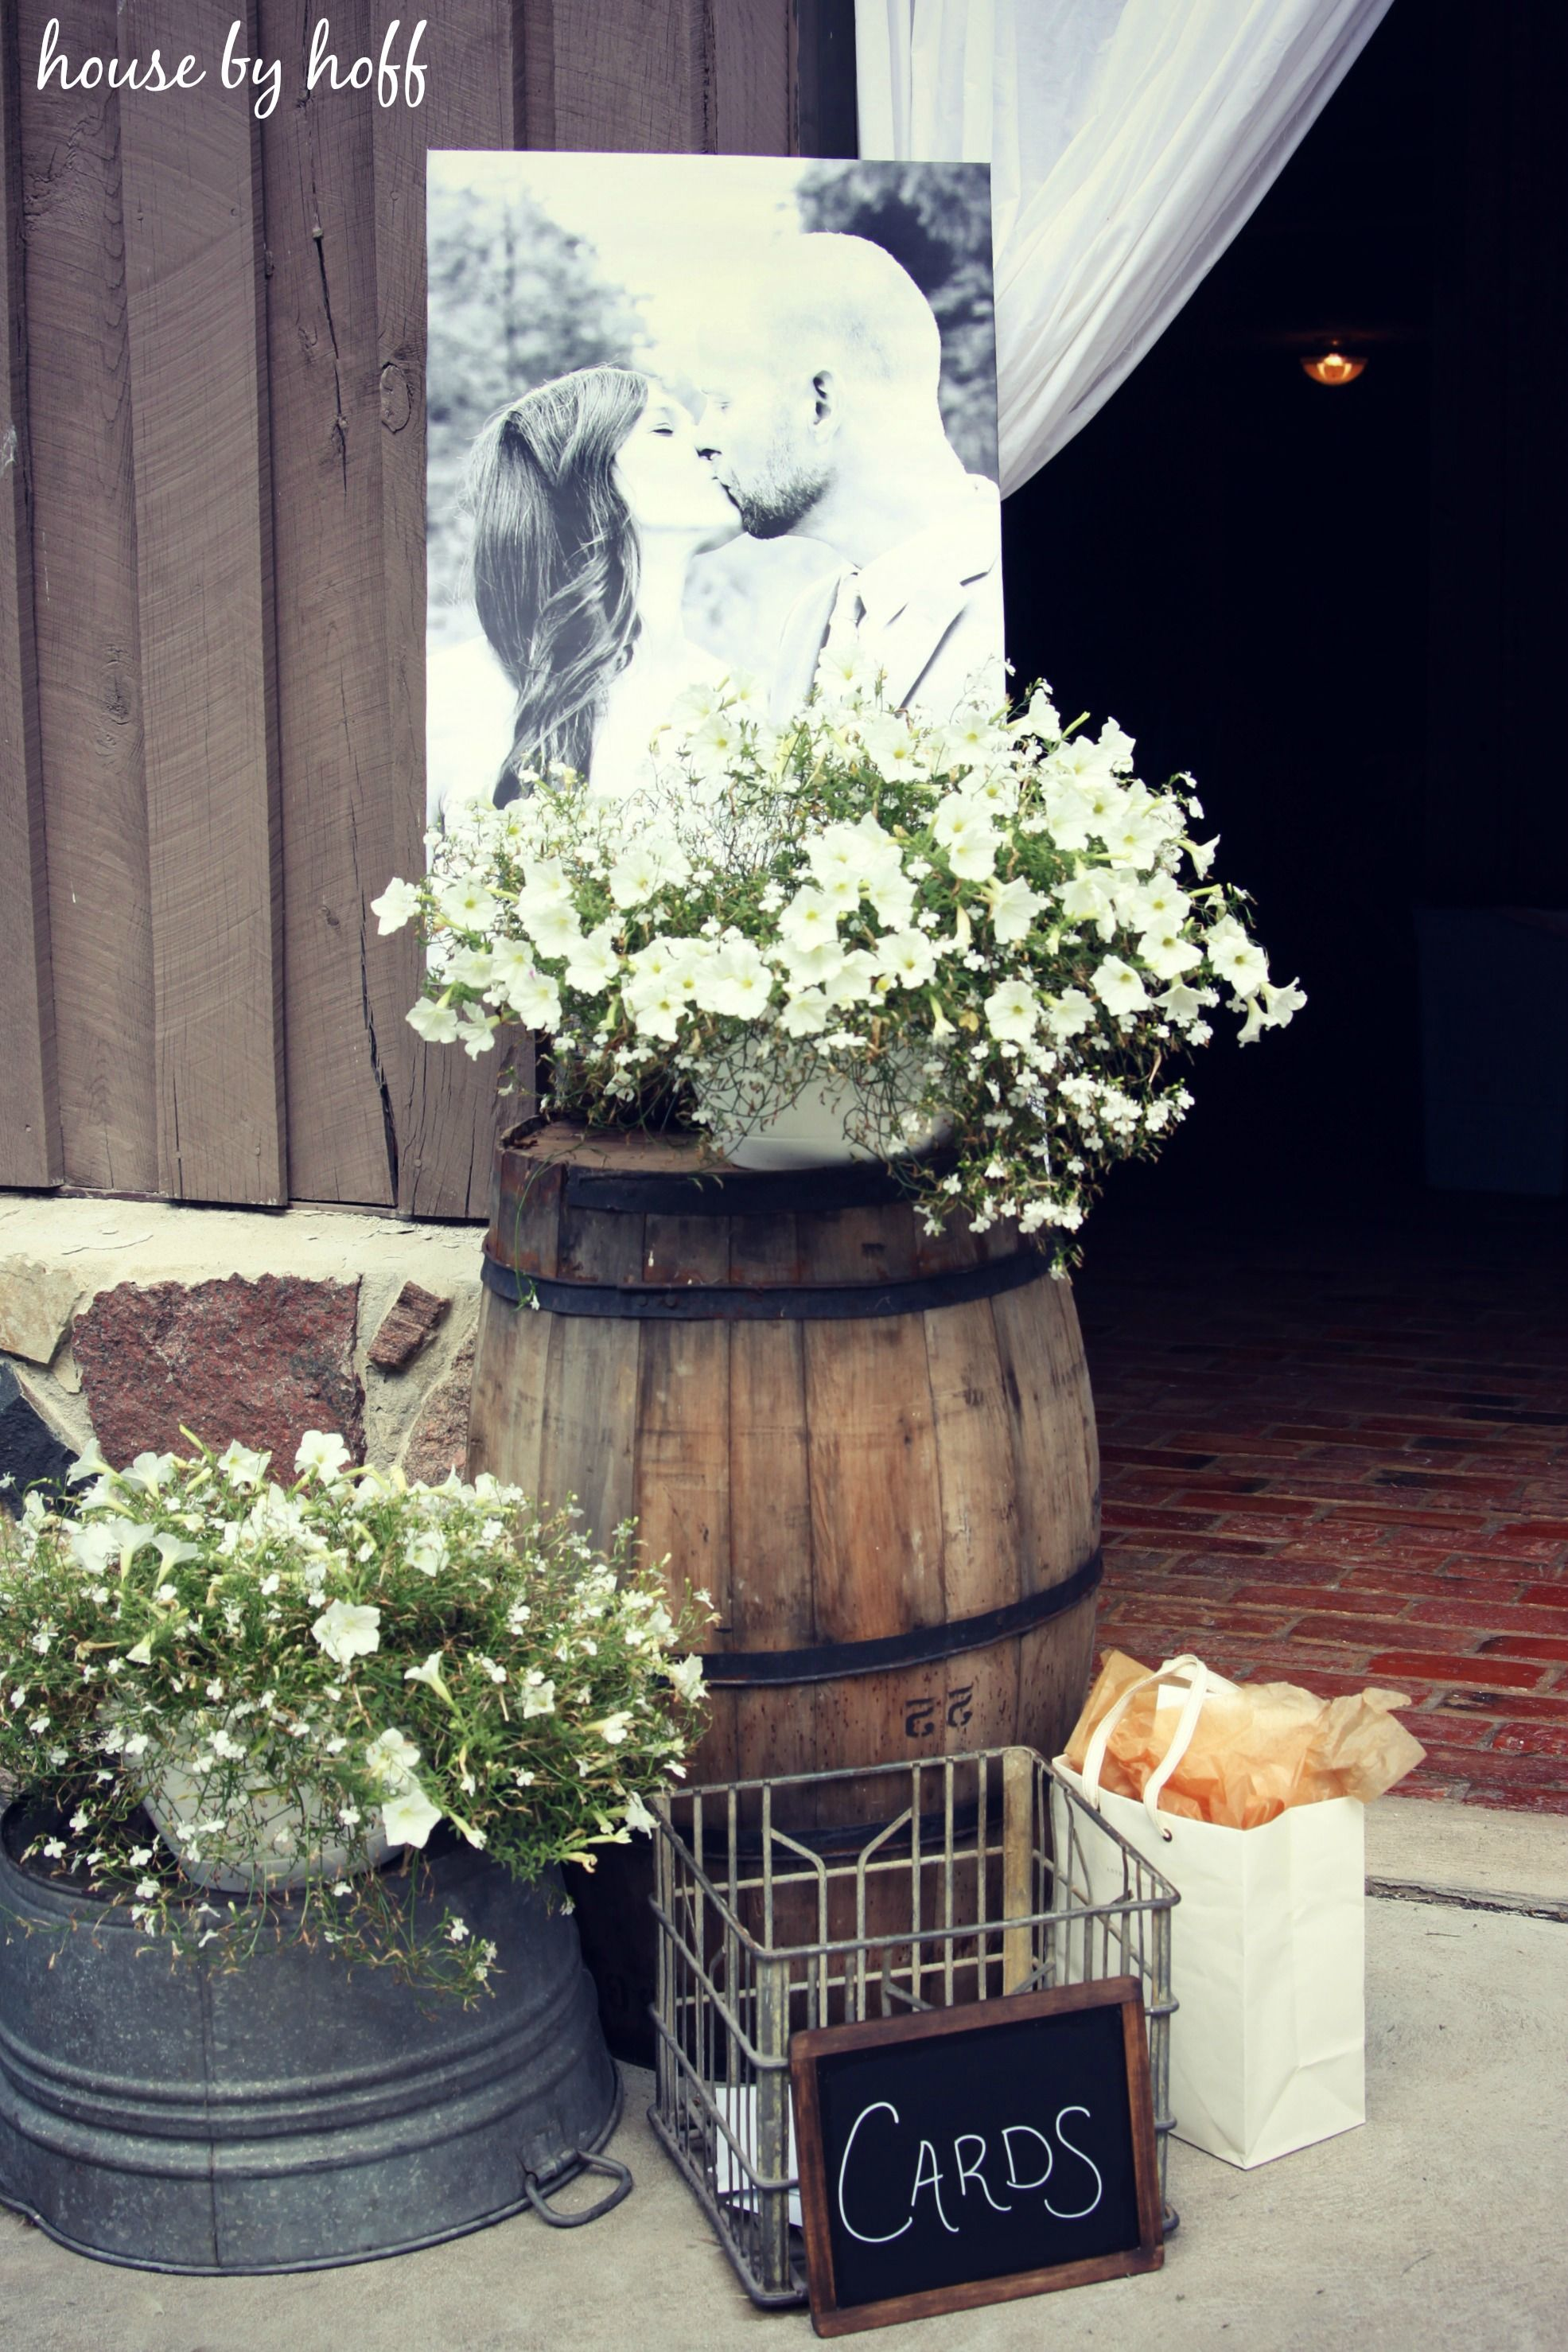 Wedding reception entrance decor - Country Wedding Reception Reception Entrancereception Ideasentrance Decorrustic